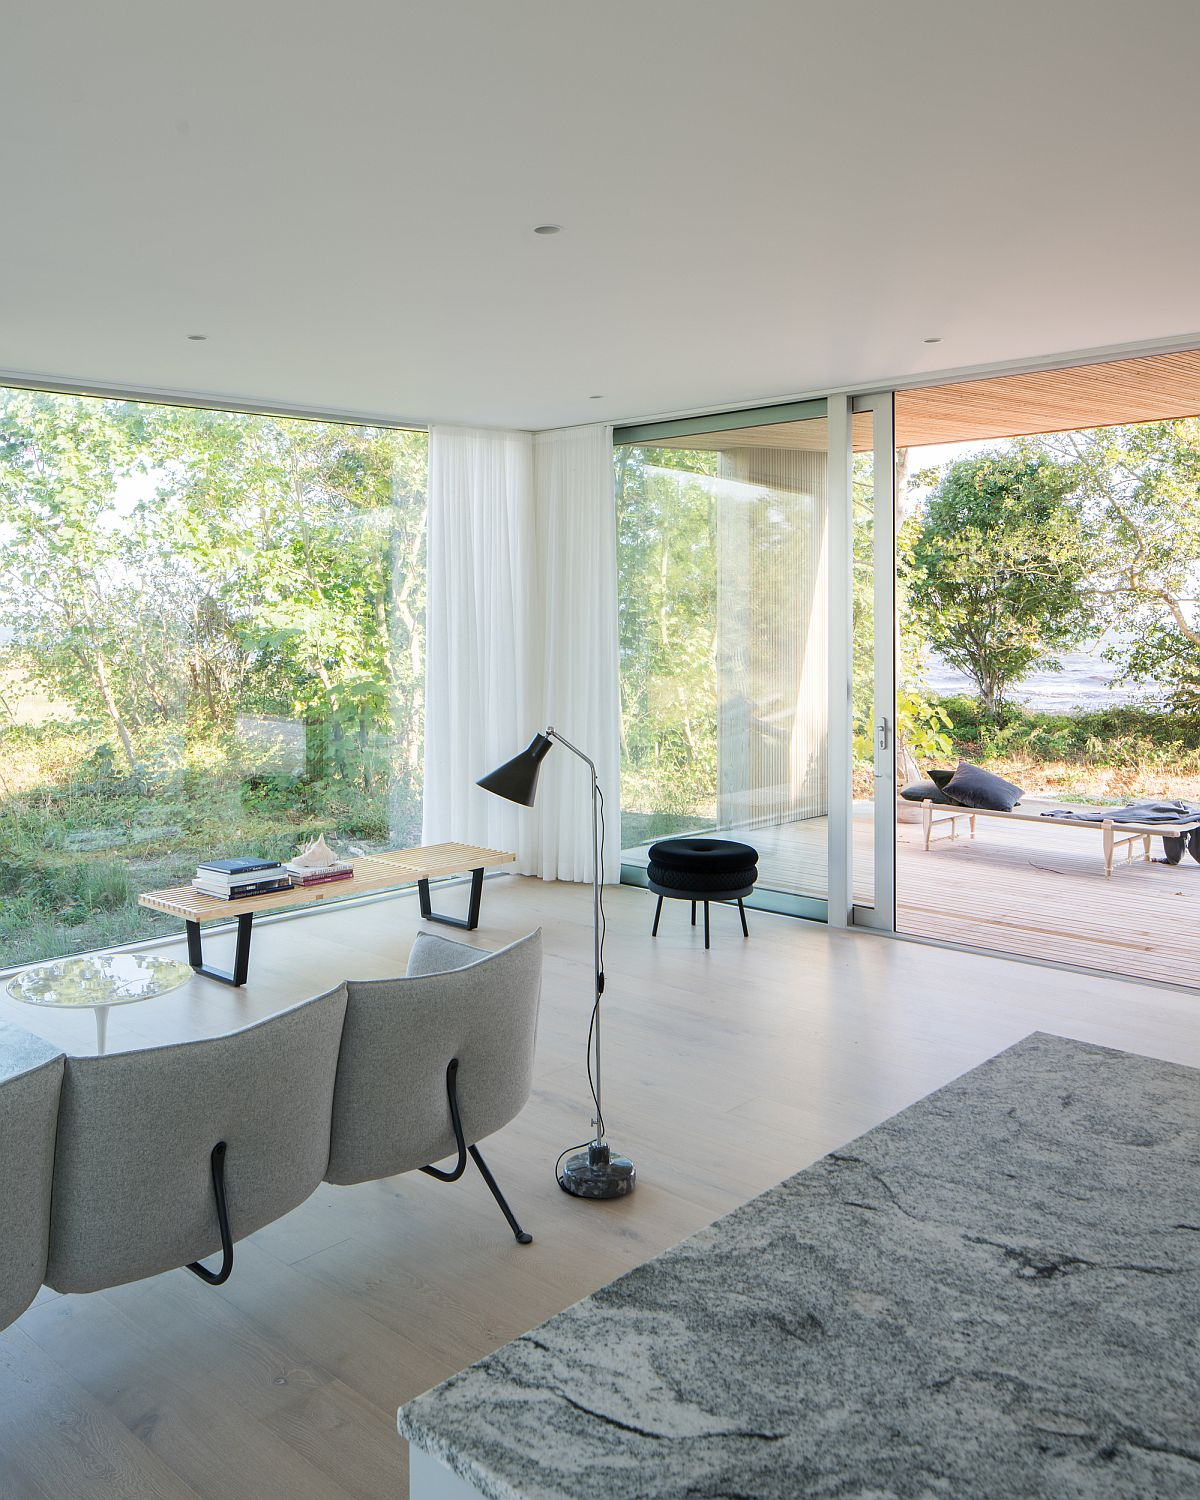 Drapes allow homeowners to switch between complete privacy and sea views